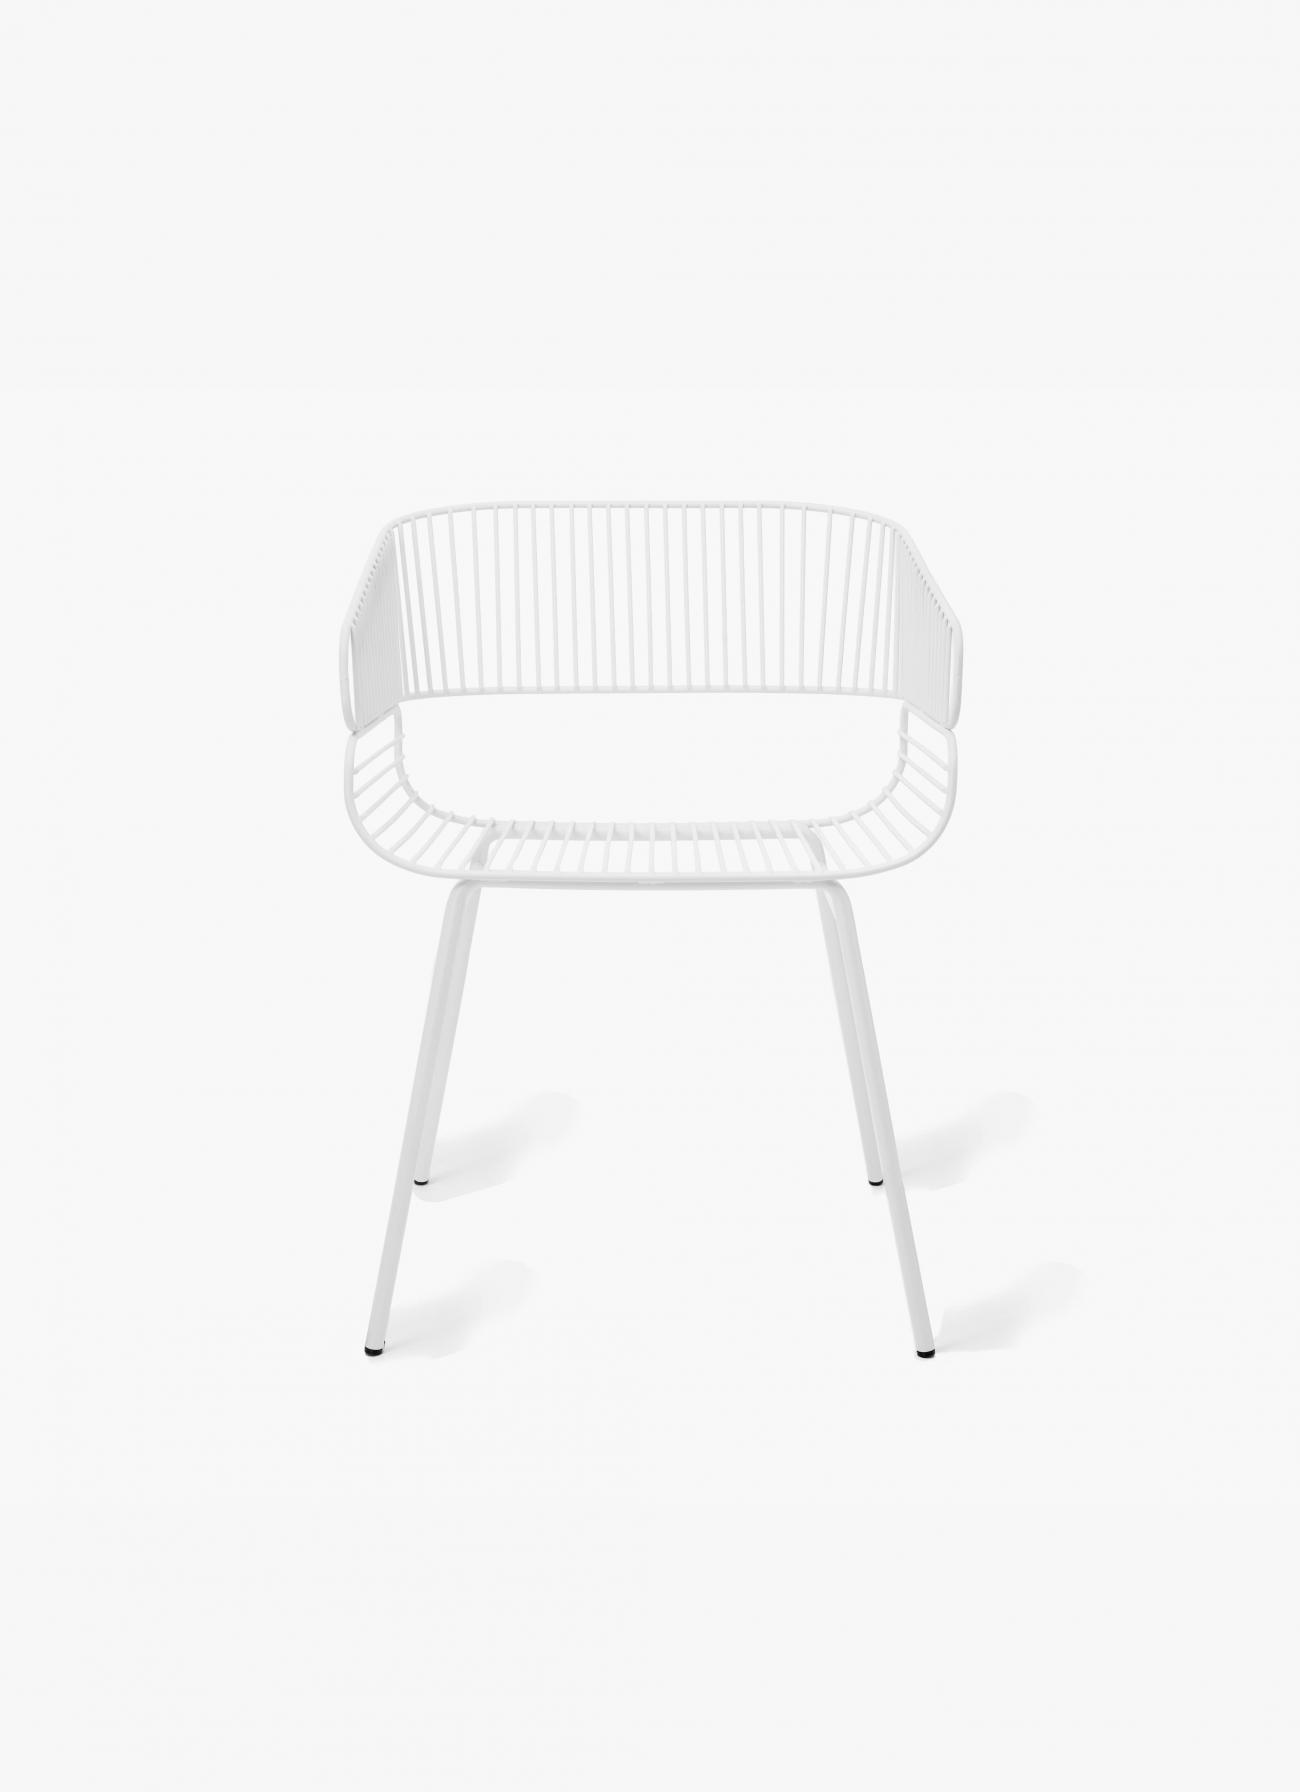 Petite Friture - Trame Chair - white